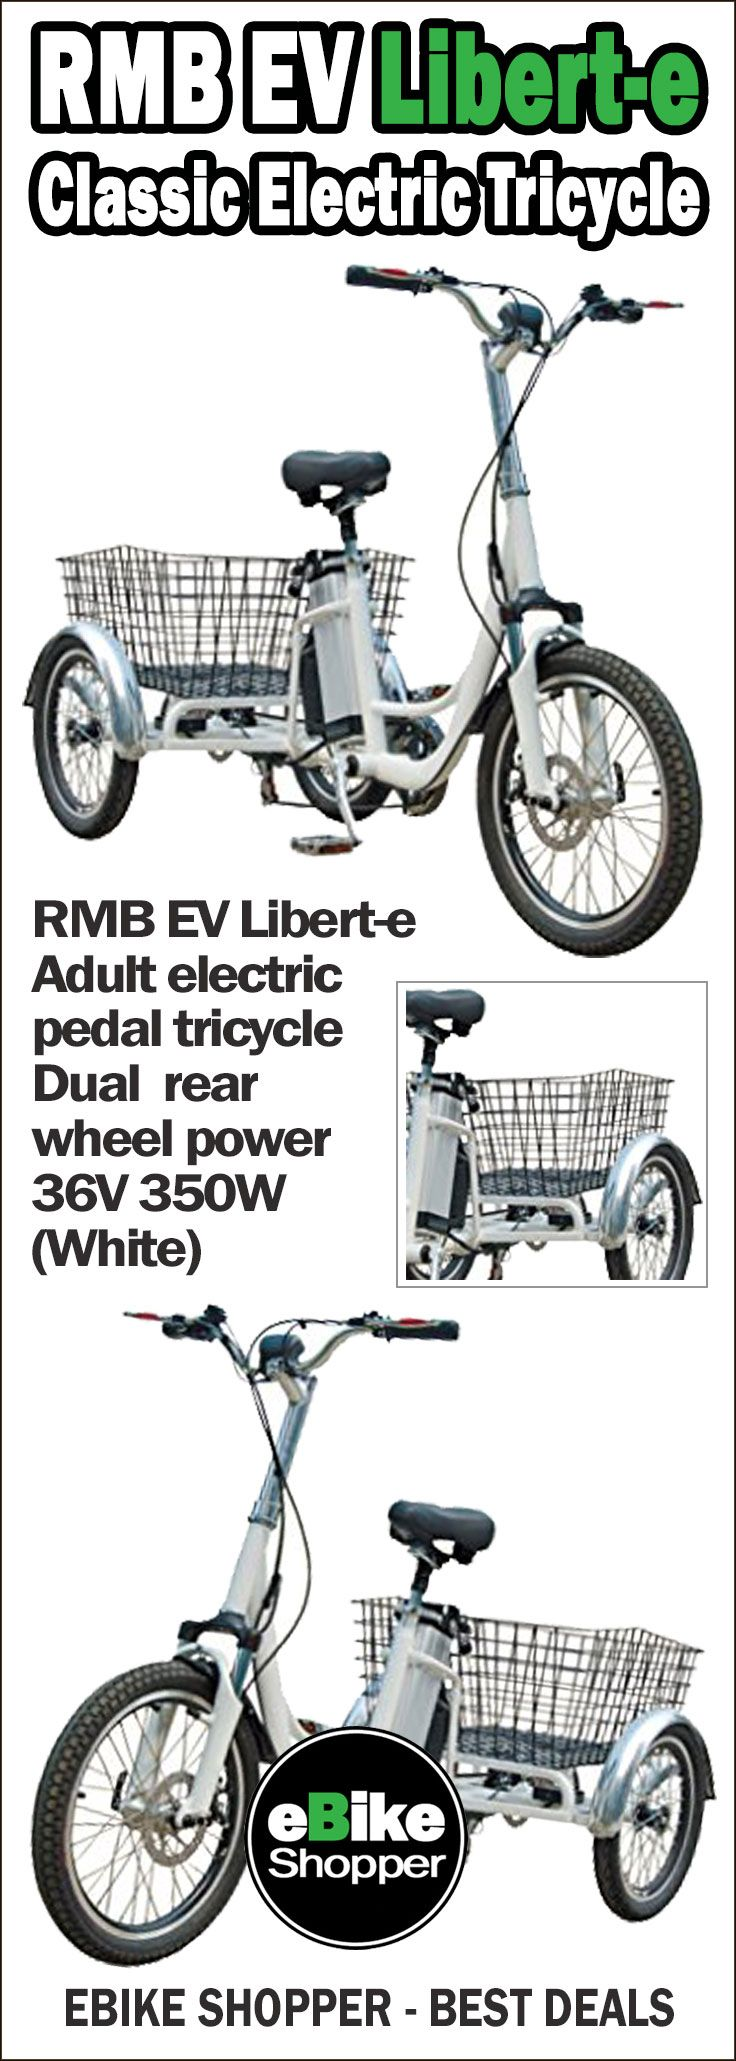 RMB EV Liberte Adult electric pedal trike / tricycle with